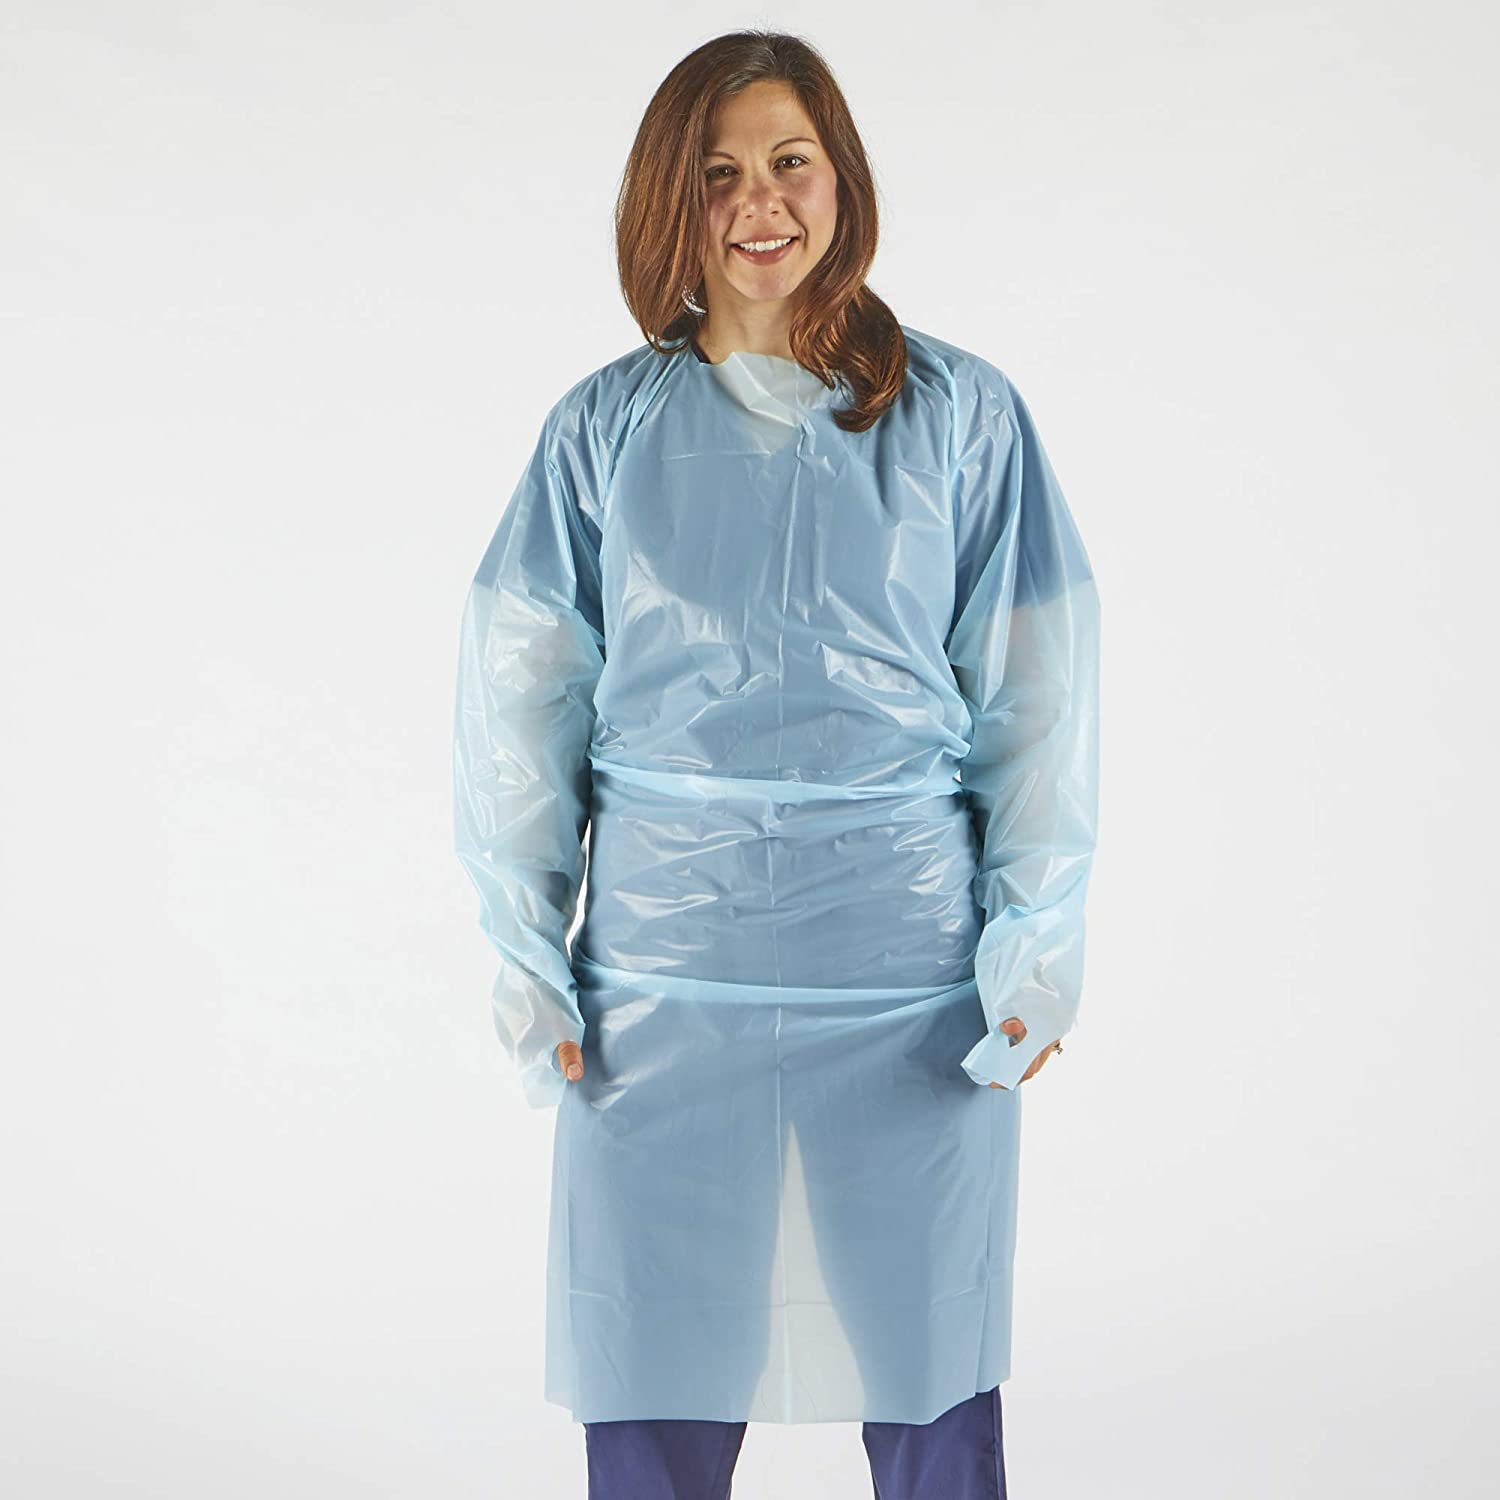 Generise Fluid Resistant Isolation Gown - Blue, Medical by My Wholesale Warehouse